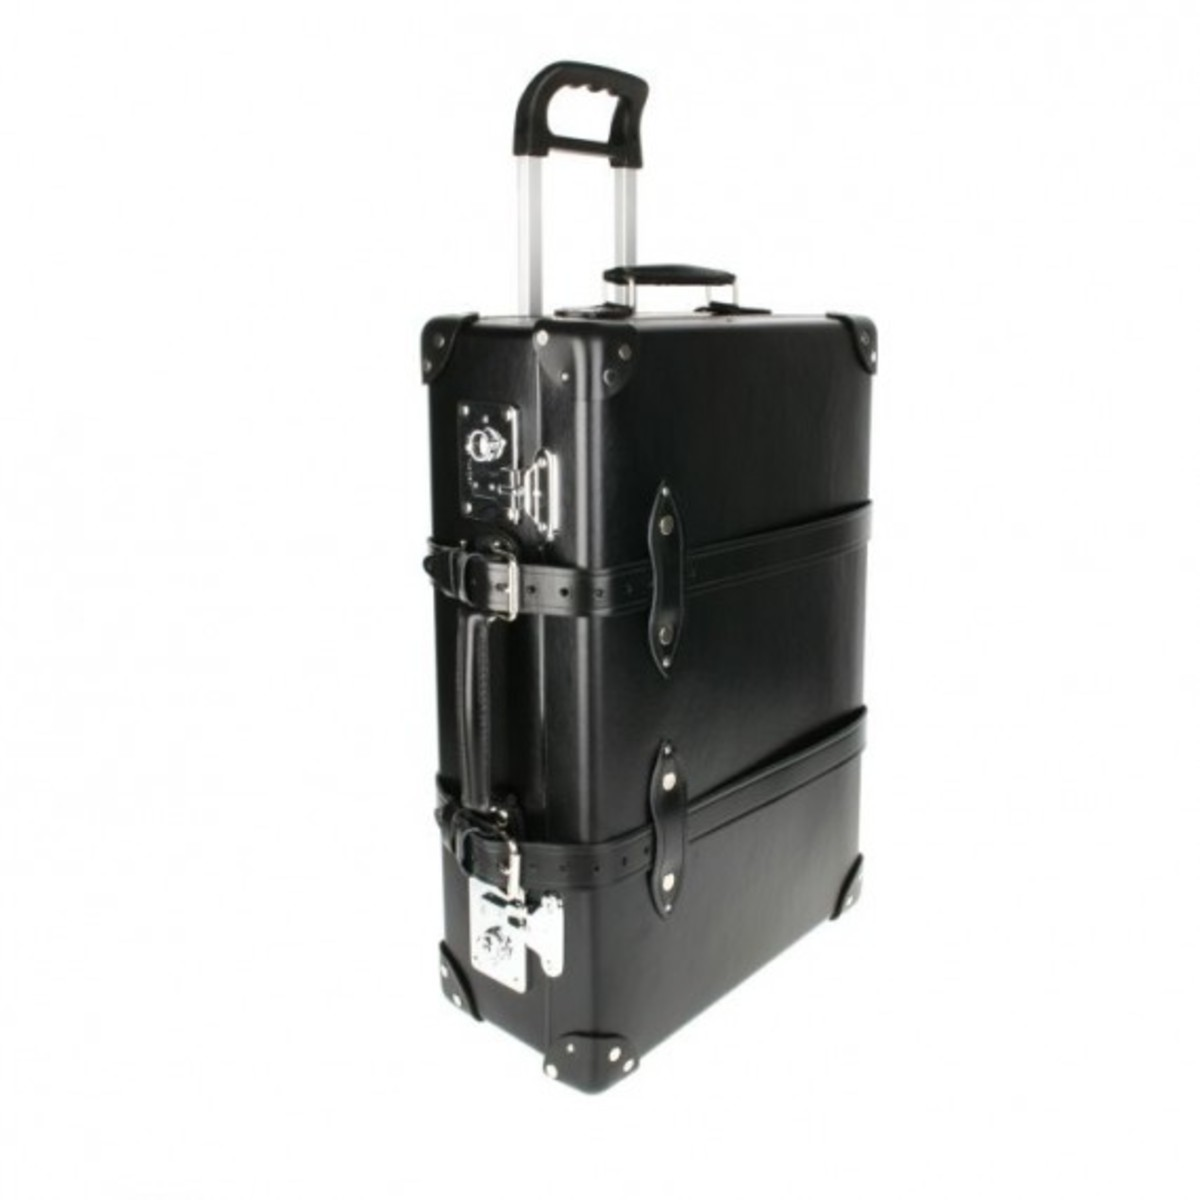 globe-trotter-x-andre-mr-a-luggage-collection-4